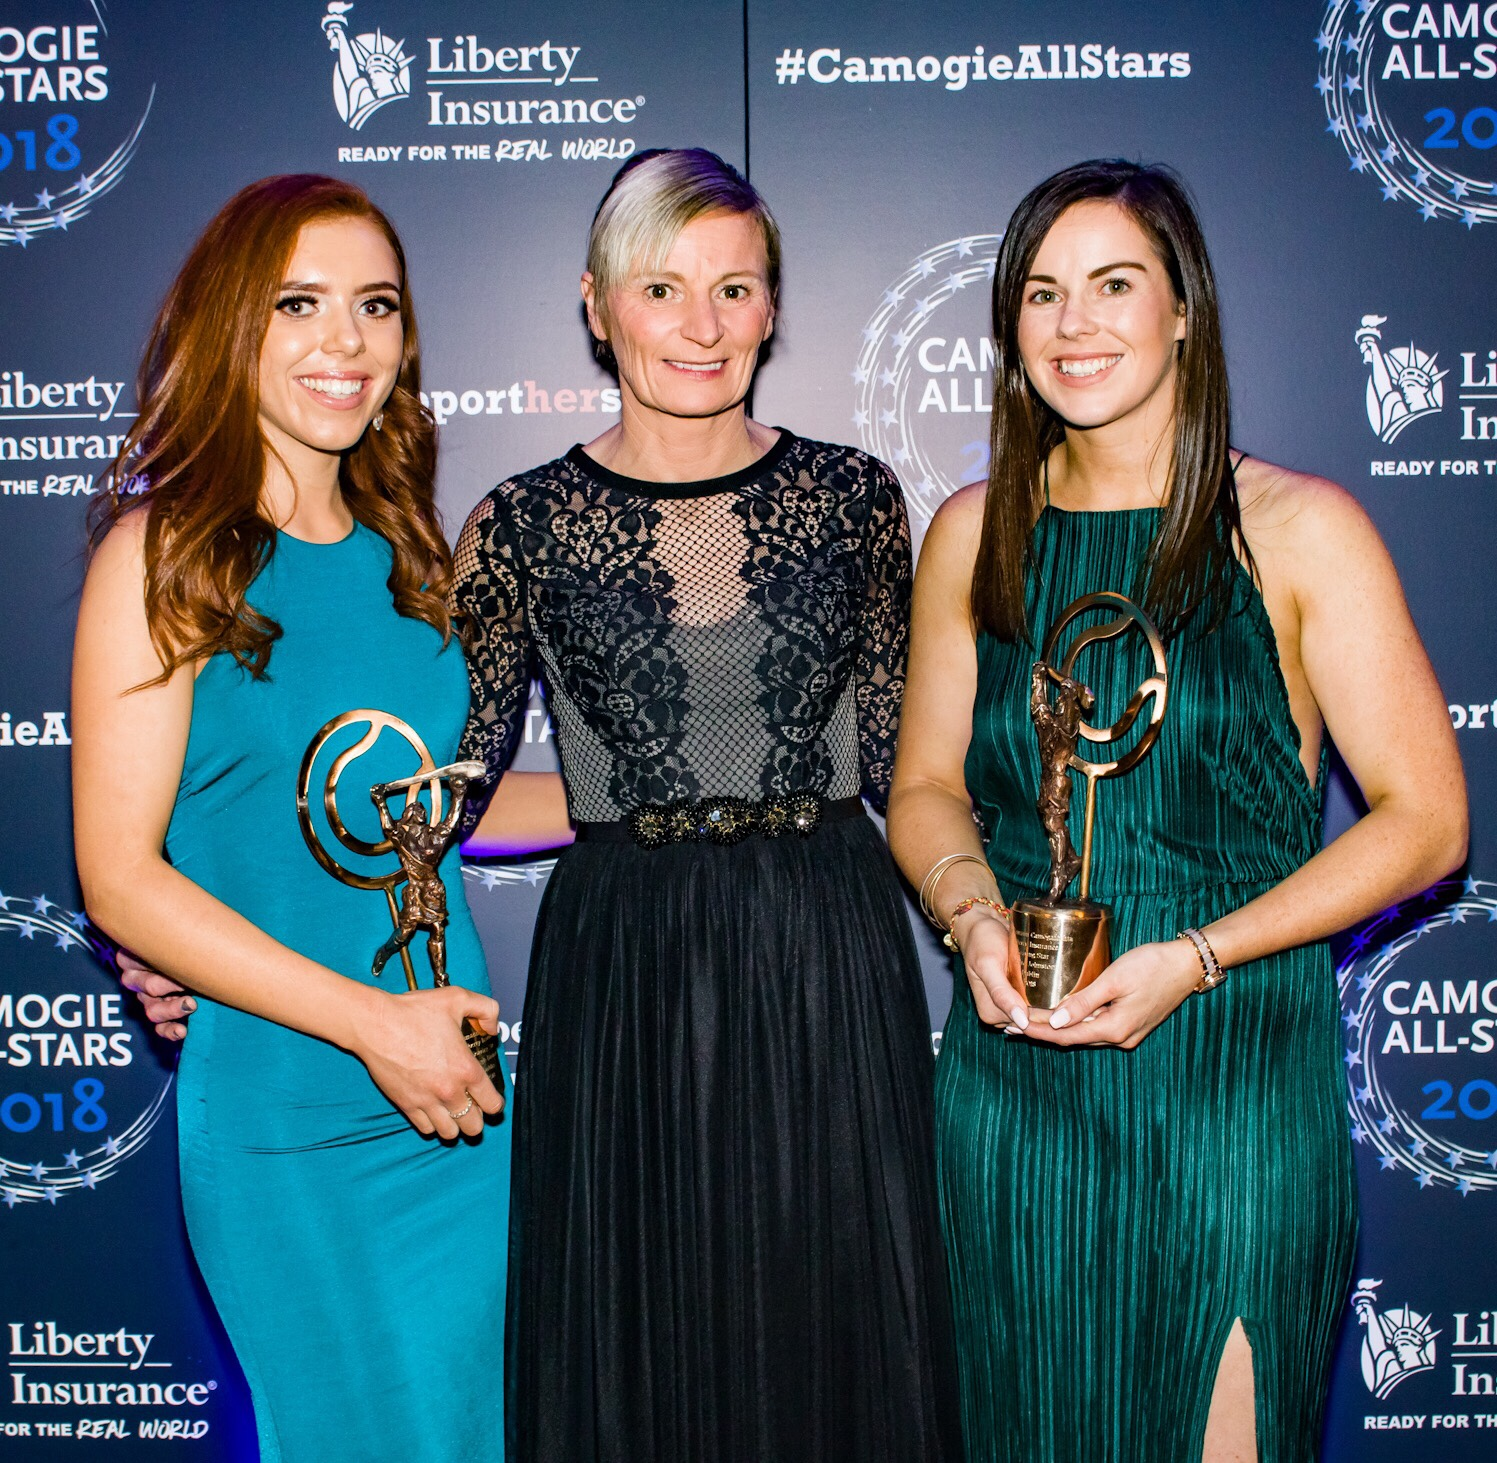 Dublin Camogie Players Caragh Dawson and Deirdre Johnstone pose with Dublin Chairperson Jenny Byrne with the trophy's they won at the Camogie All-Stars